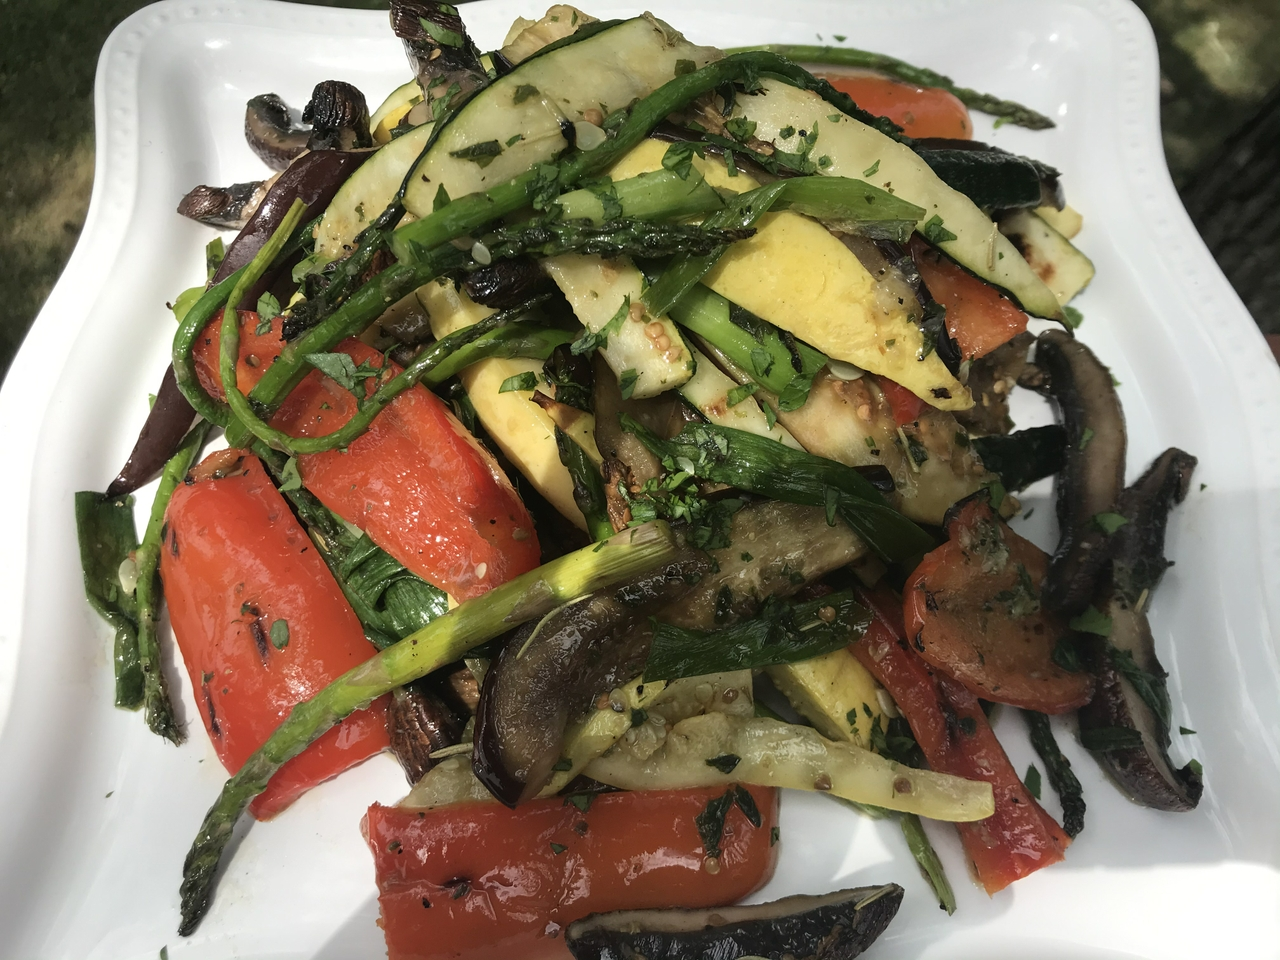 Grilled Basil and Vegetable Salad: Who Needs A Burger?